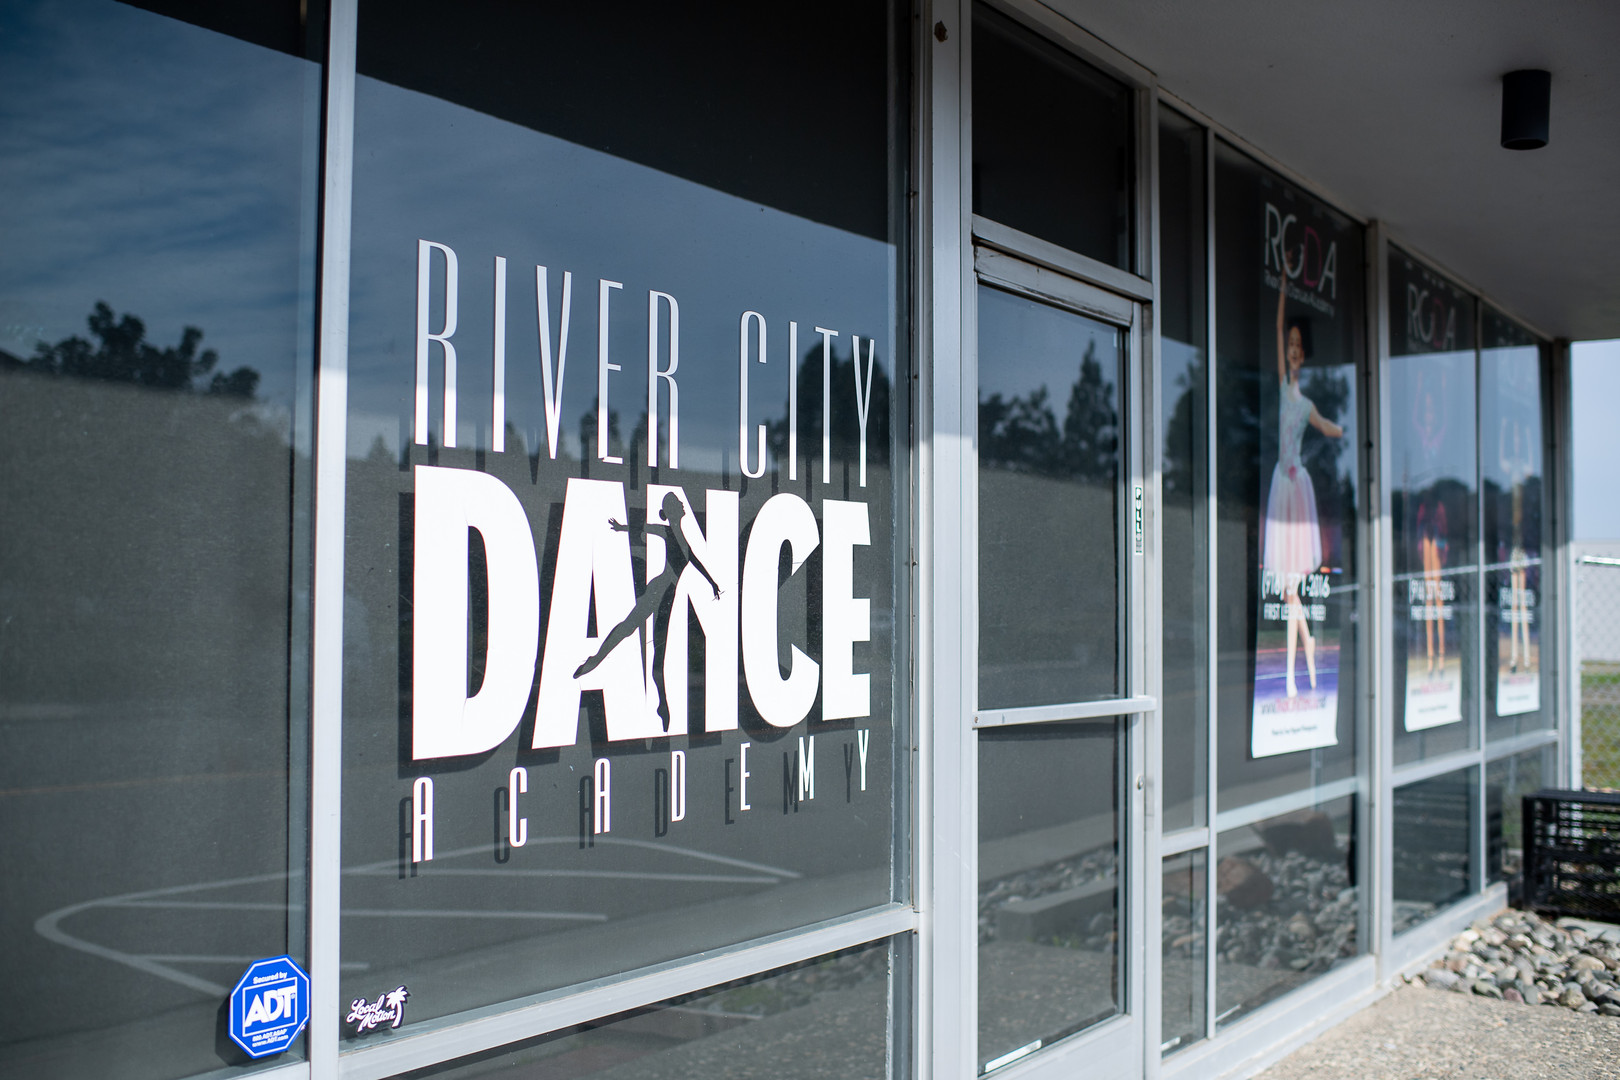 River City Dance Academy